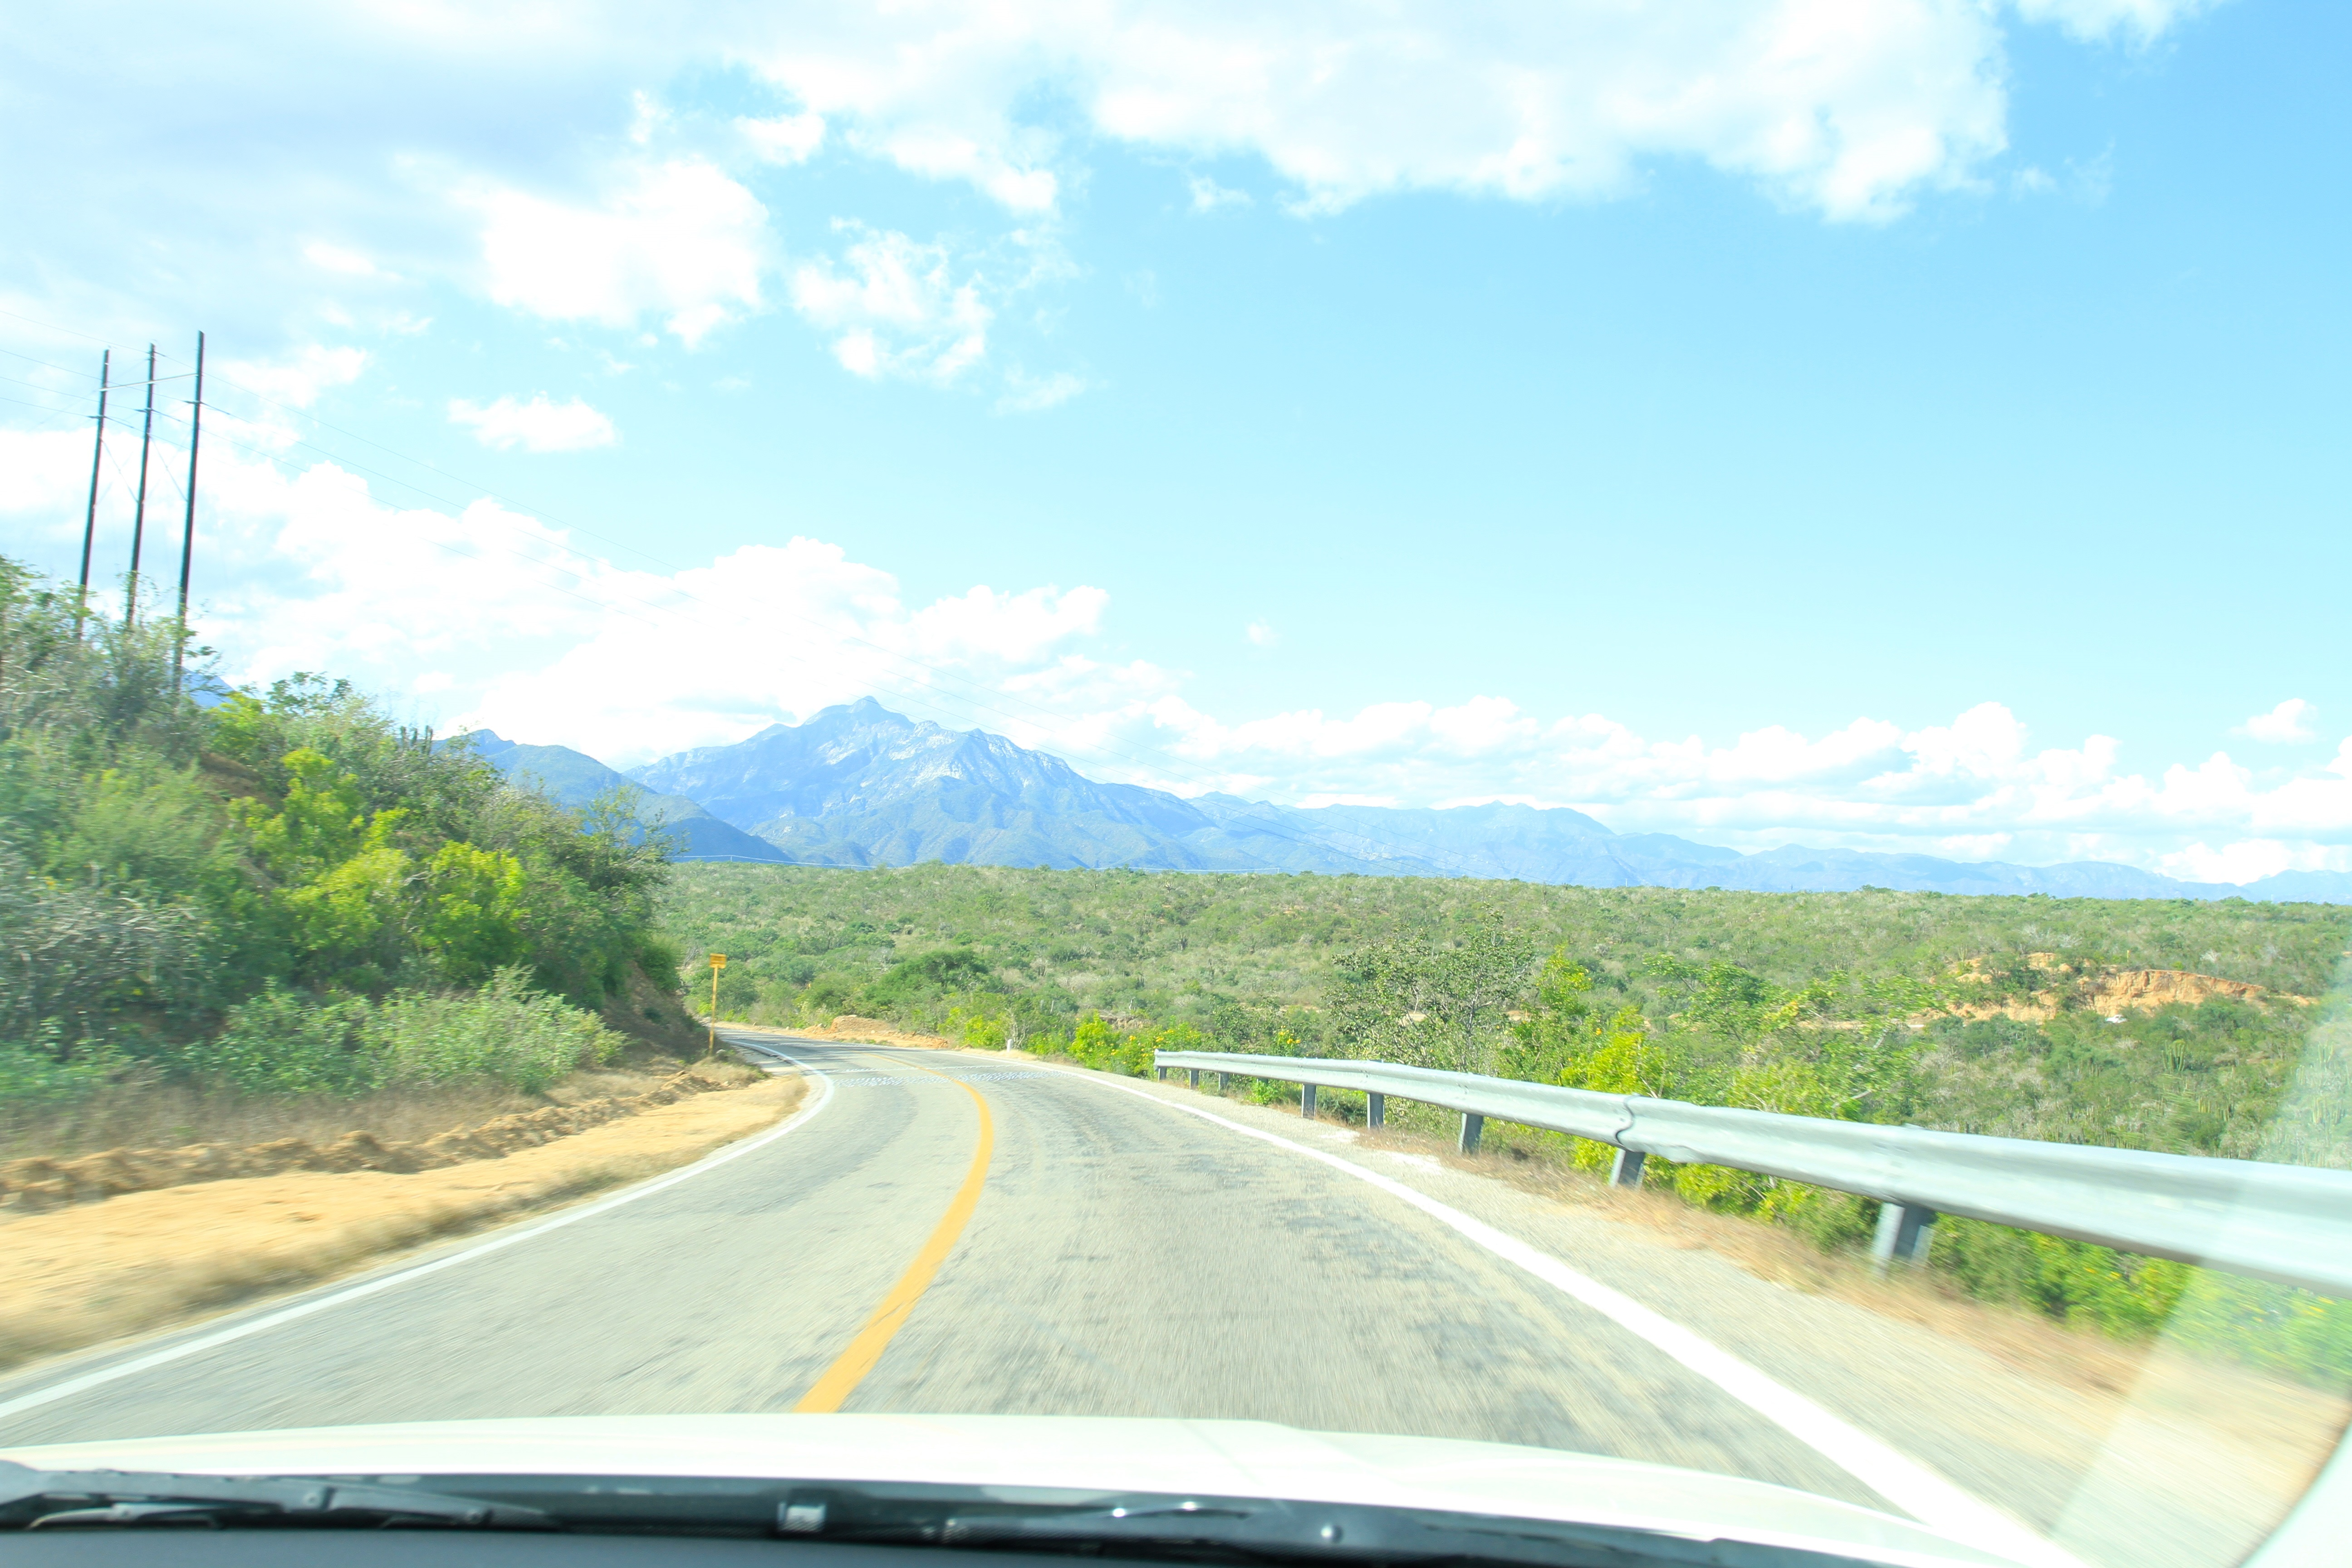 A view from the cockpit on the way to La Ventana